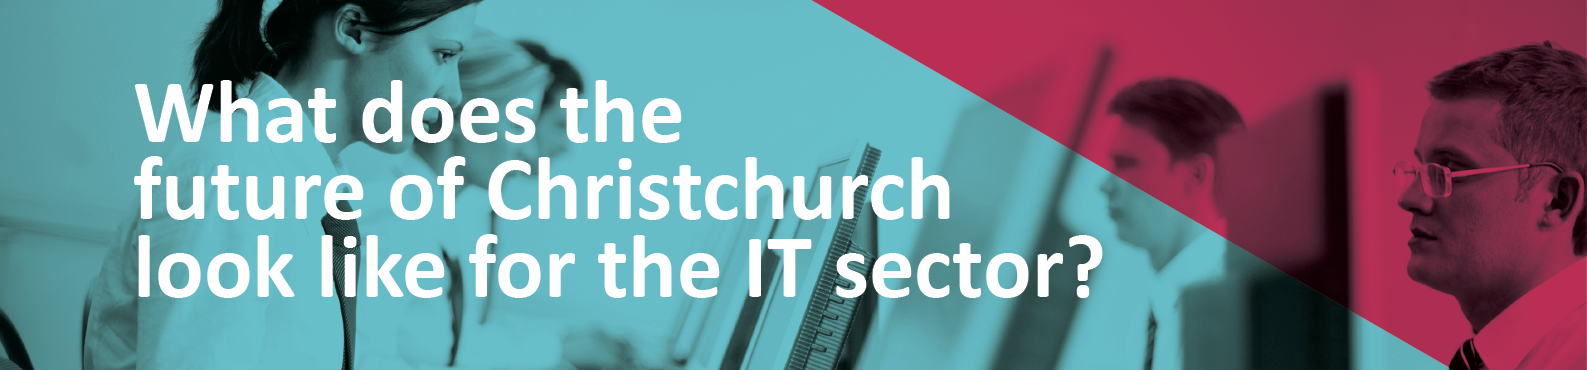 What does the future of Christchurch look like for the IT sector? - Sourced Report August 2014